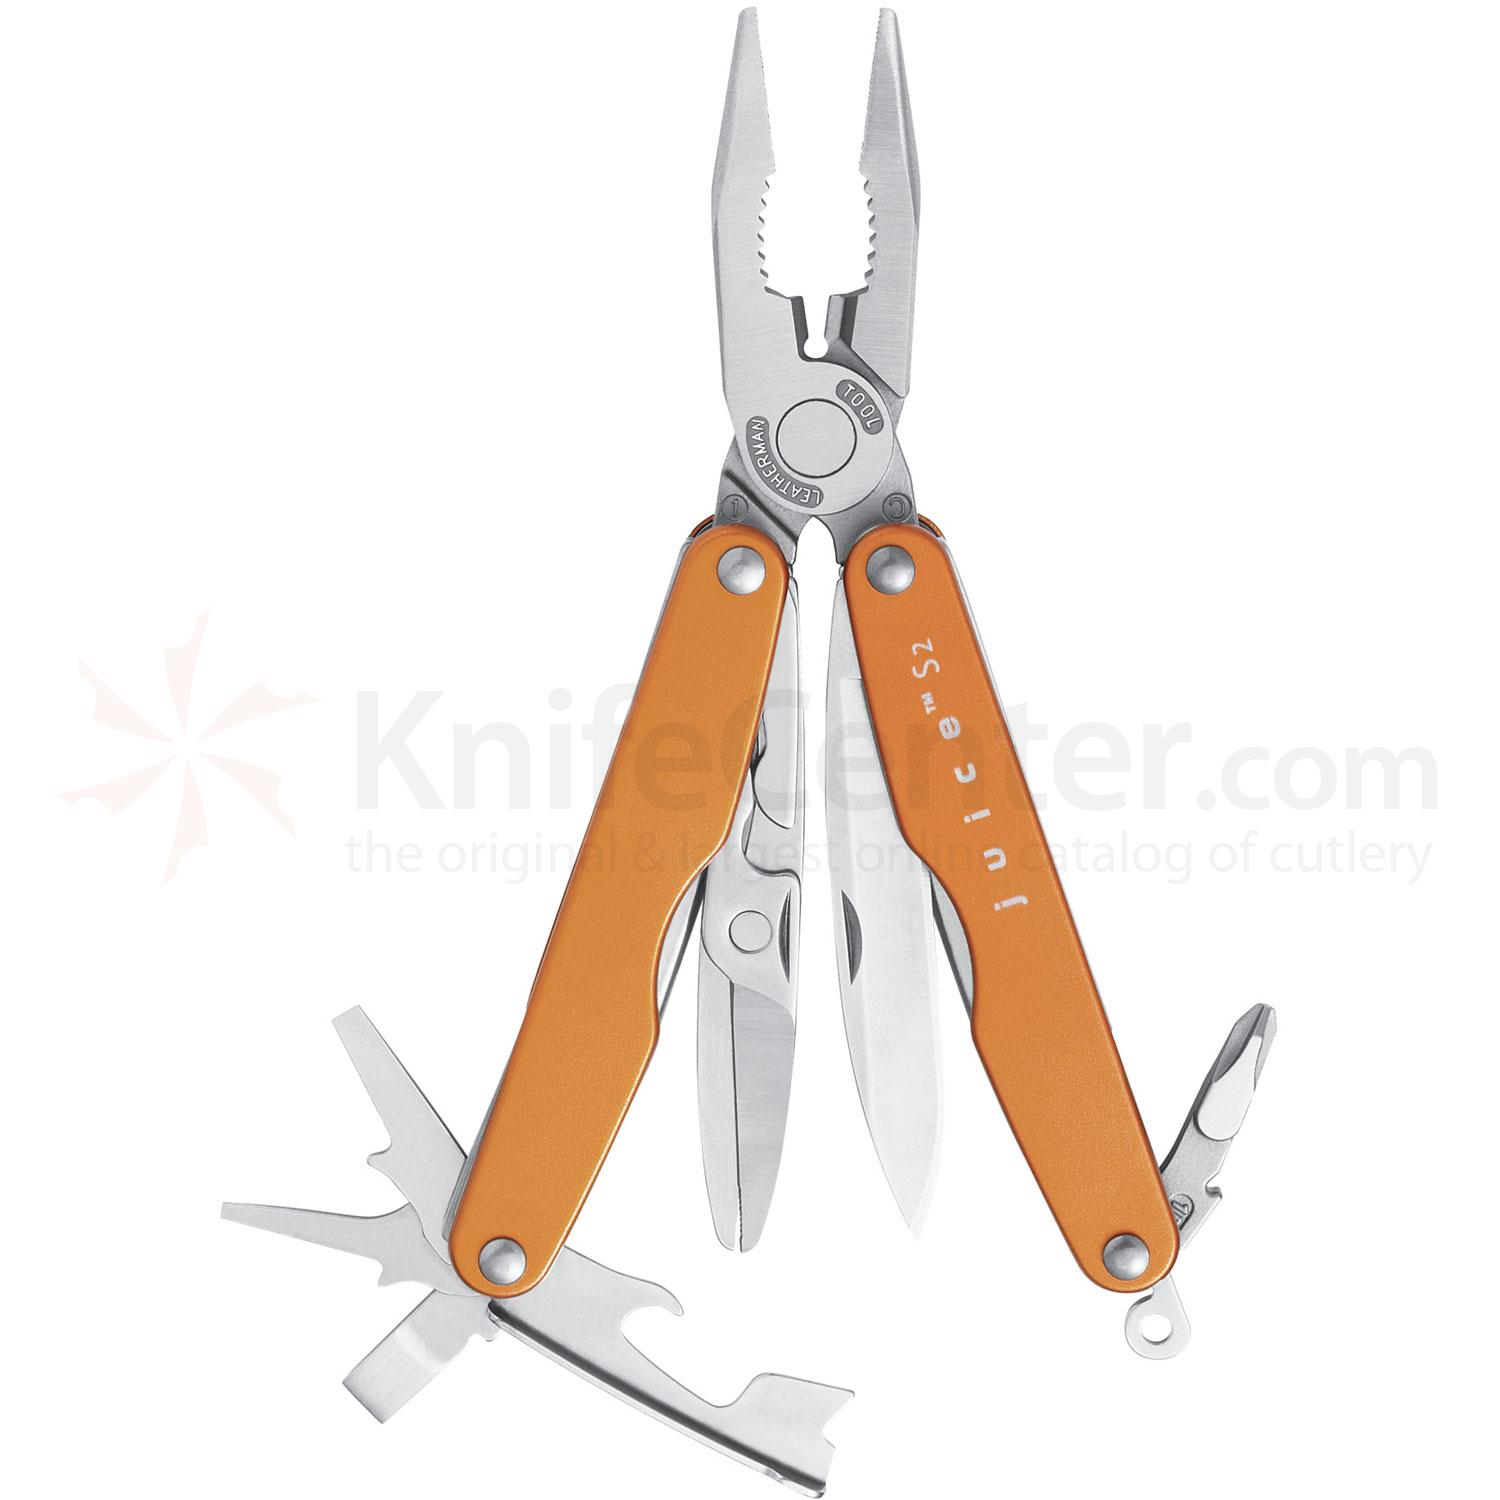 Leatherman Juice S2 Pocket-Size Multi-Tool, Flame Orange